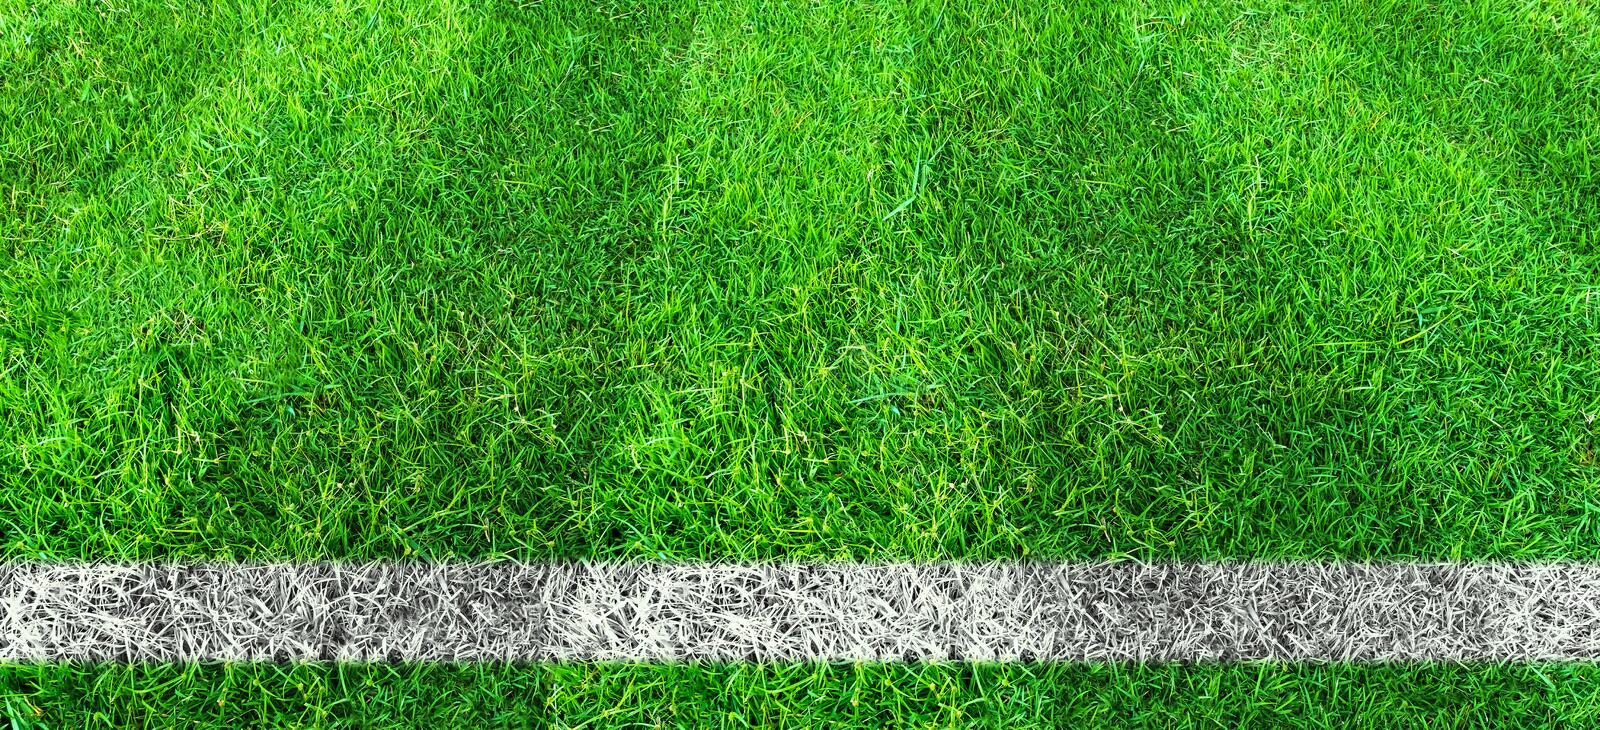 Soccer line in green grass of soccer field. Green lawn field pattern for background royalty free illustration